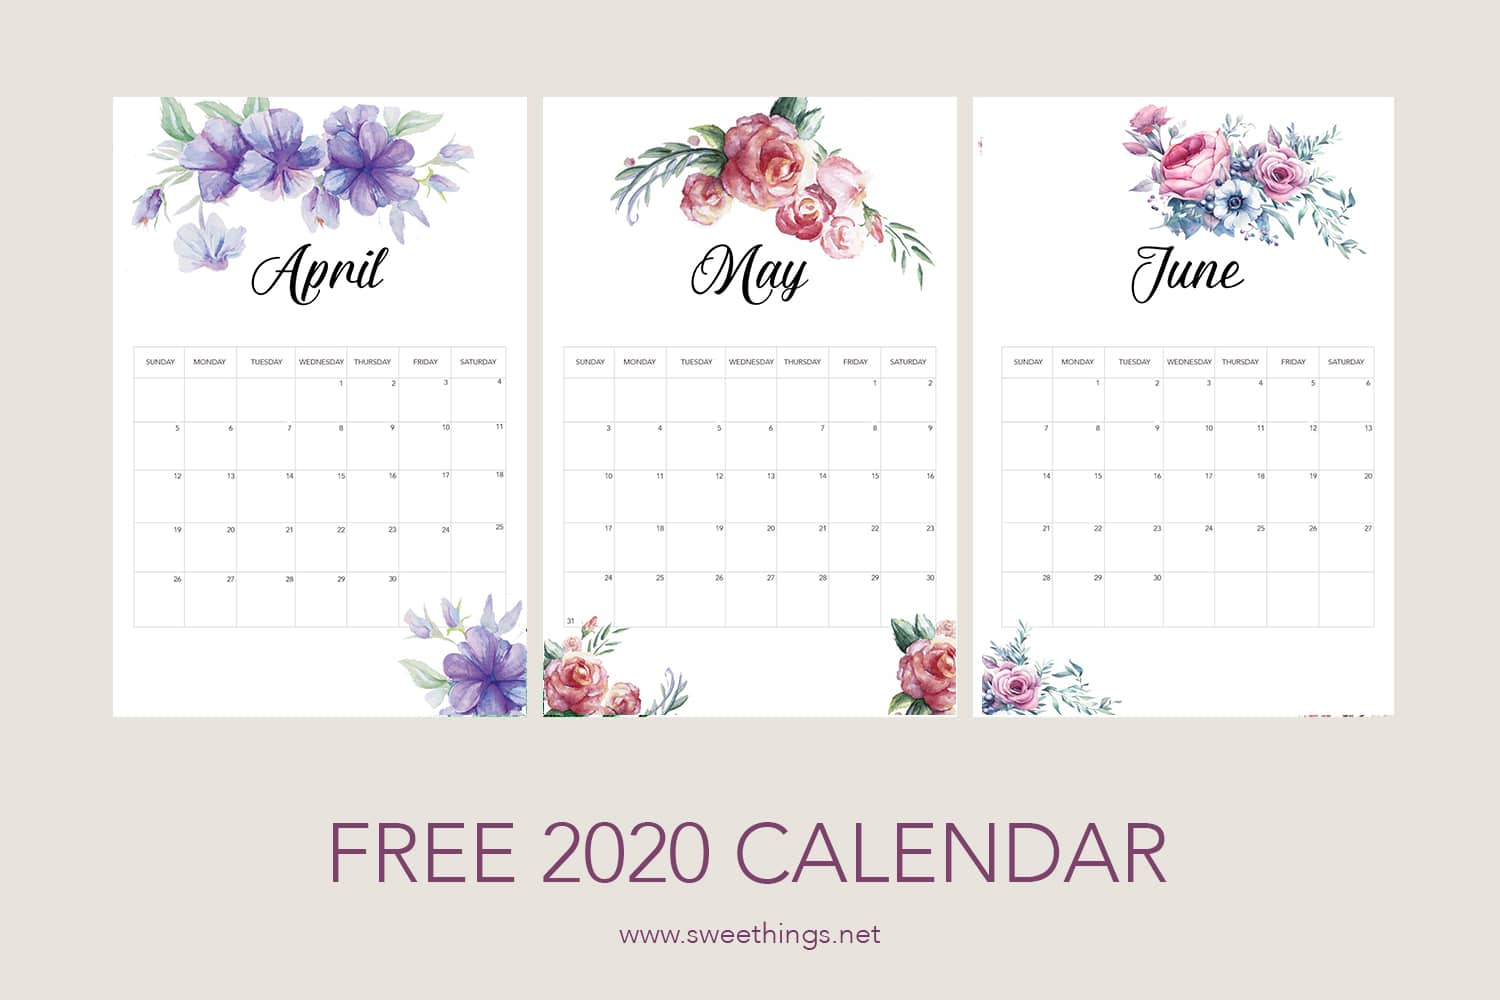 April to June 2020 calendar · Via www.sweethings.net